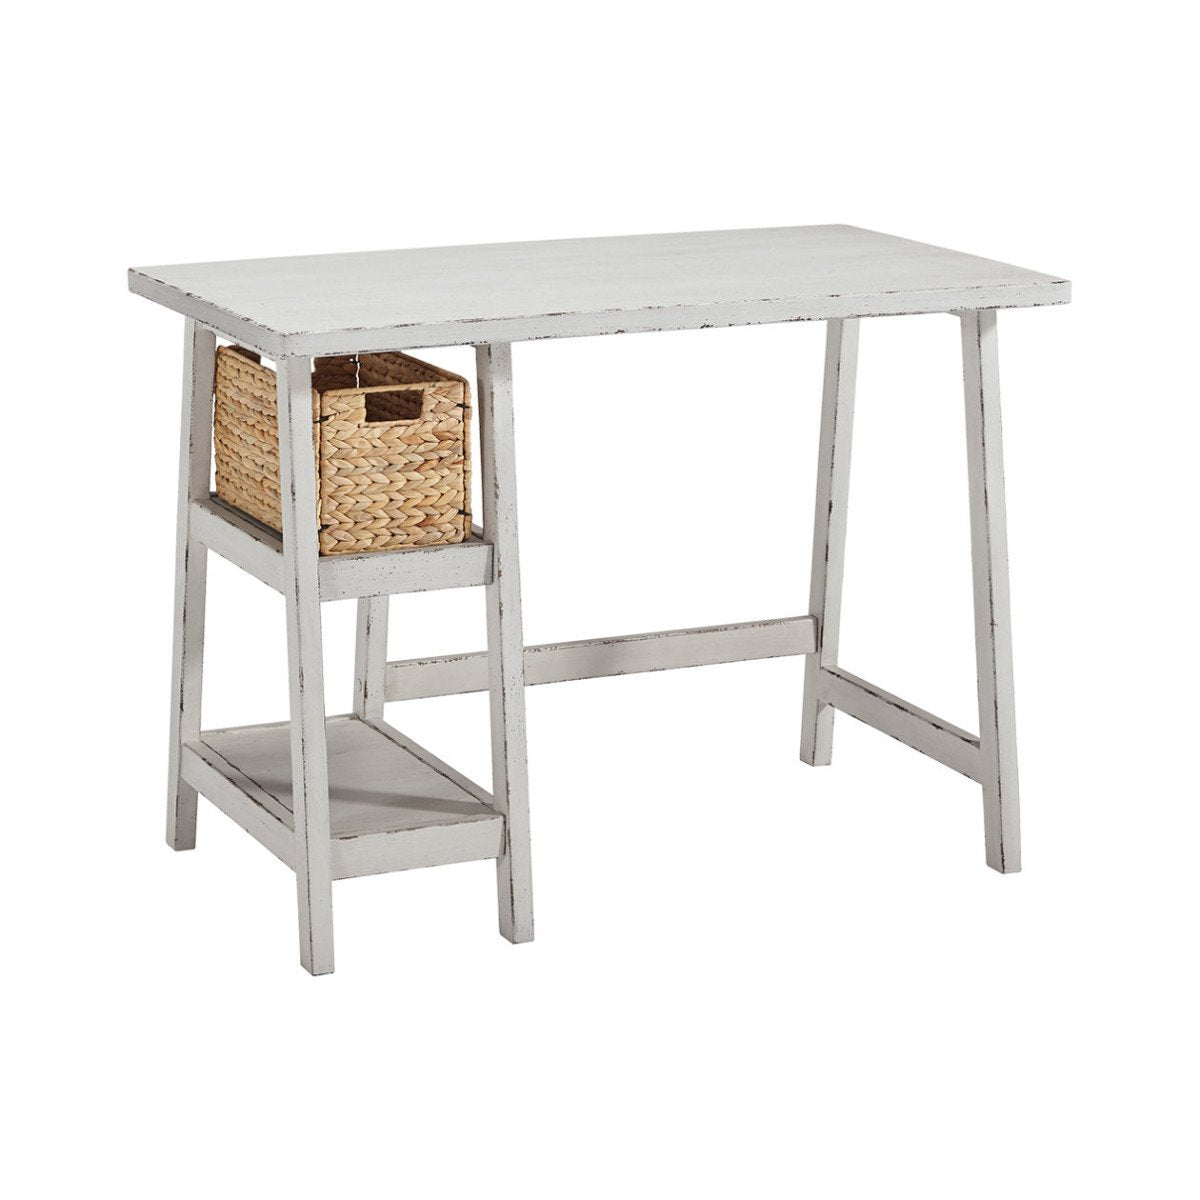 Benjara Bm190073 Distressed Wooden Desk With Two Display Shelves And Trestle Base Small White Benzara Com